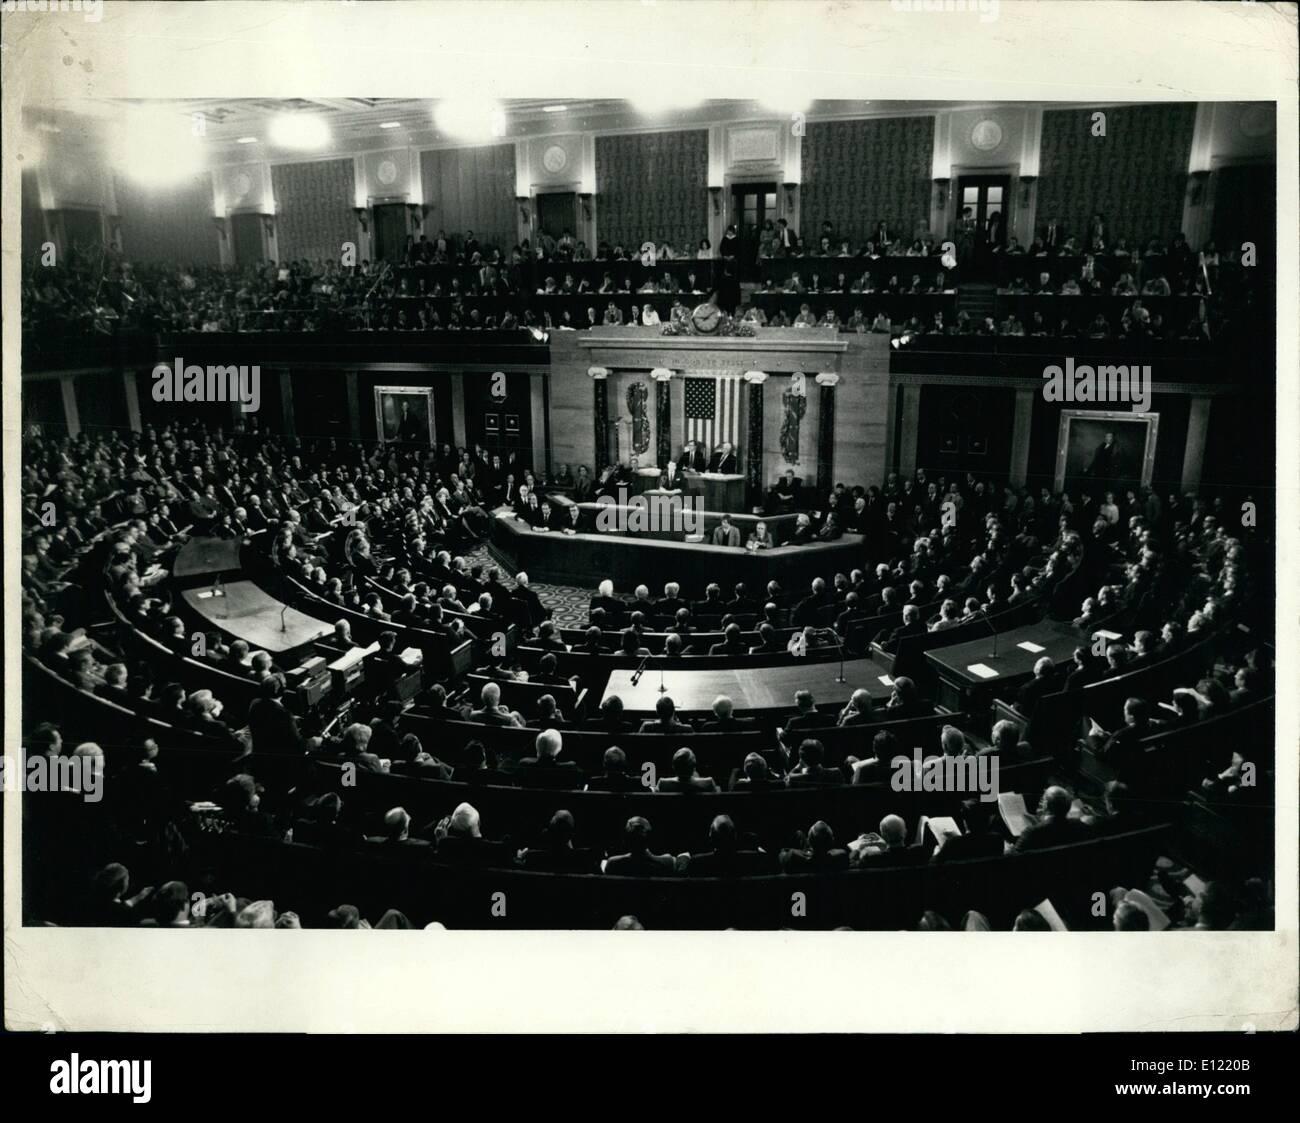 Jan. 01, 1982 - Reagan Would Do Away With Welfare Programs Washington, D.C.: General view of President Ronald W. Reagan as he addressed a Joint Session of The U.S. Congress this evening at the U.S. Capitol. Reagan proposed doing away with the welfare and food stamp program and delegating this project to the fifty states. He will not ask for a tax increase this year and lauded his program of lower inflation and reduced taxes. - Stock Image